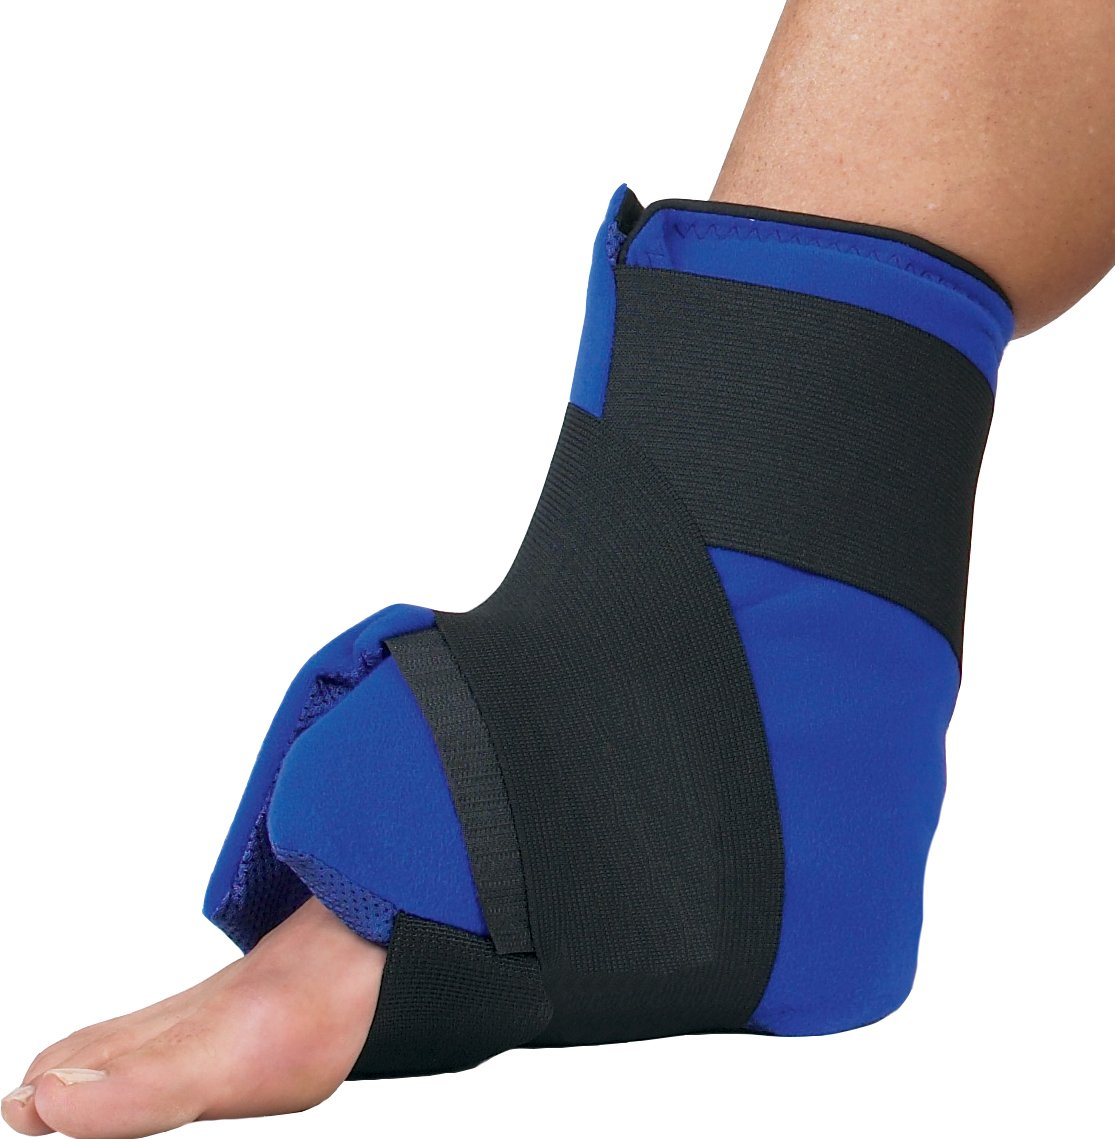 DonJoy DuraSoft Cold Therapy Foot and Ankle Wrap with 4 Ice Mat Inserts